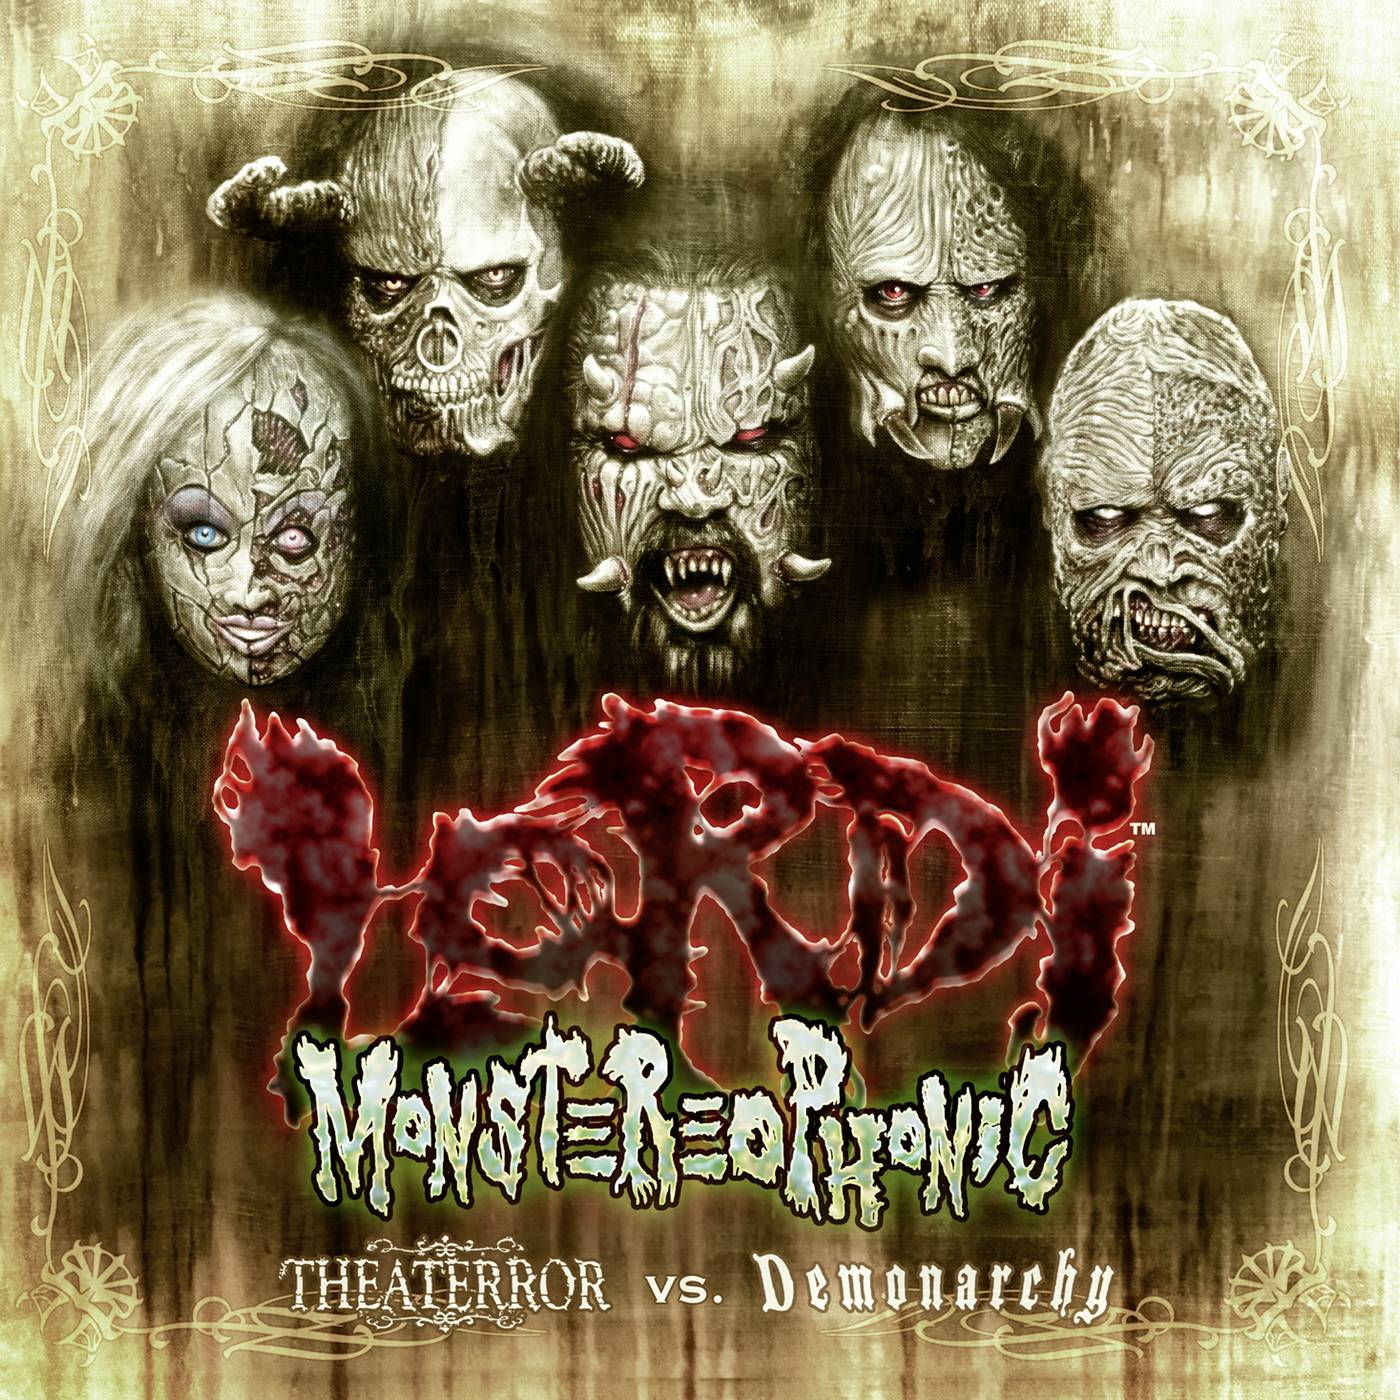 Lordi: Monstereophonic (2016) Book Cover